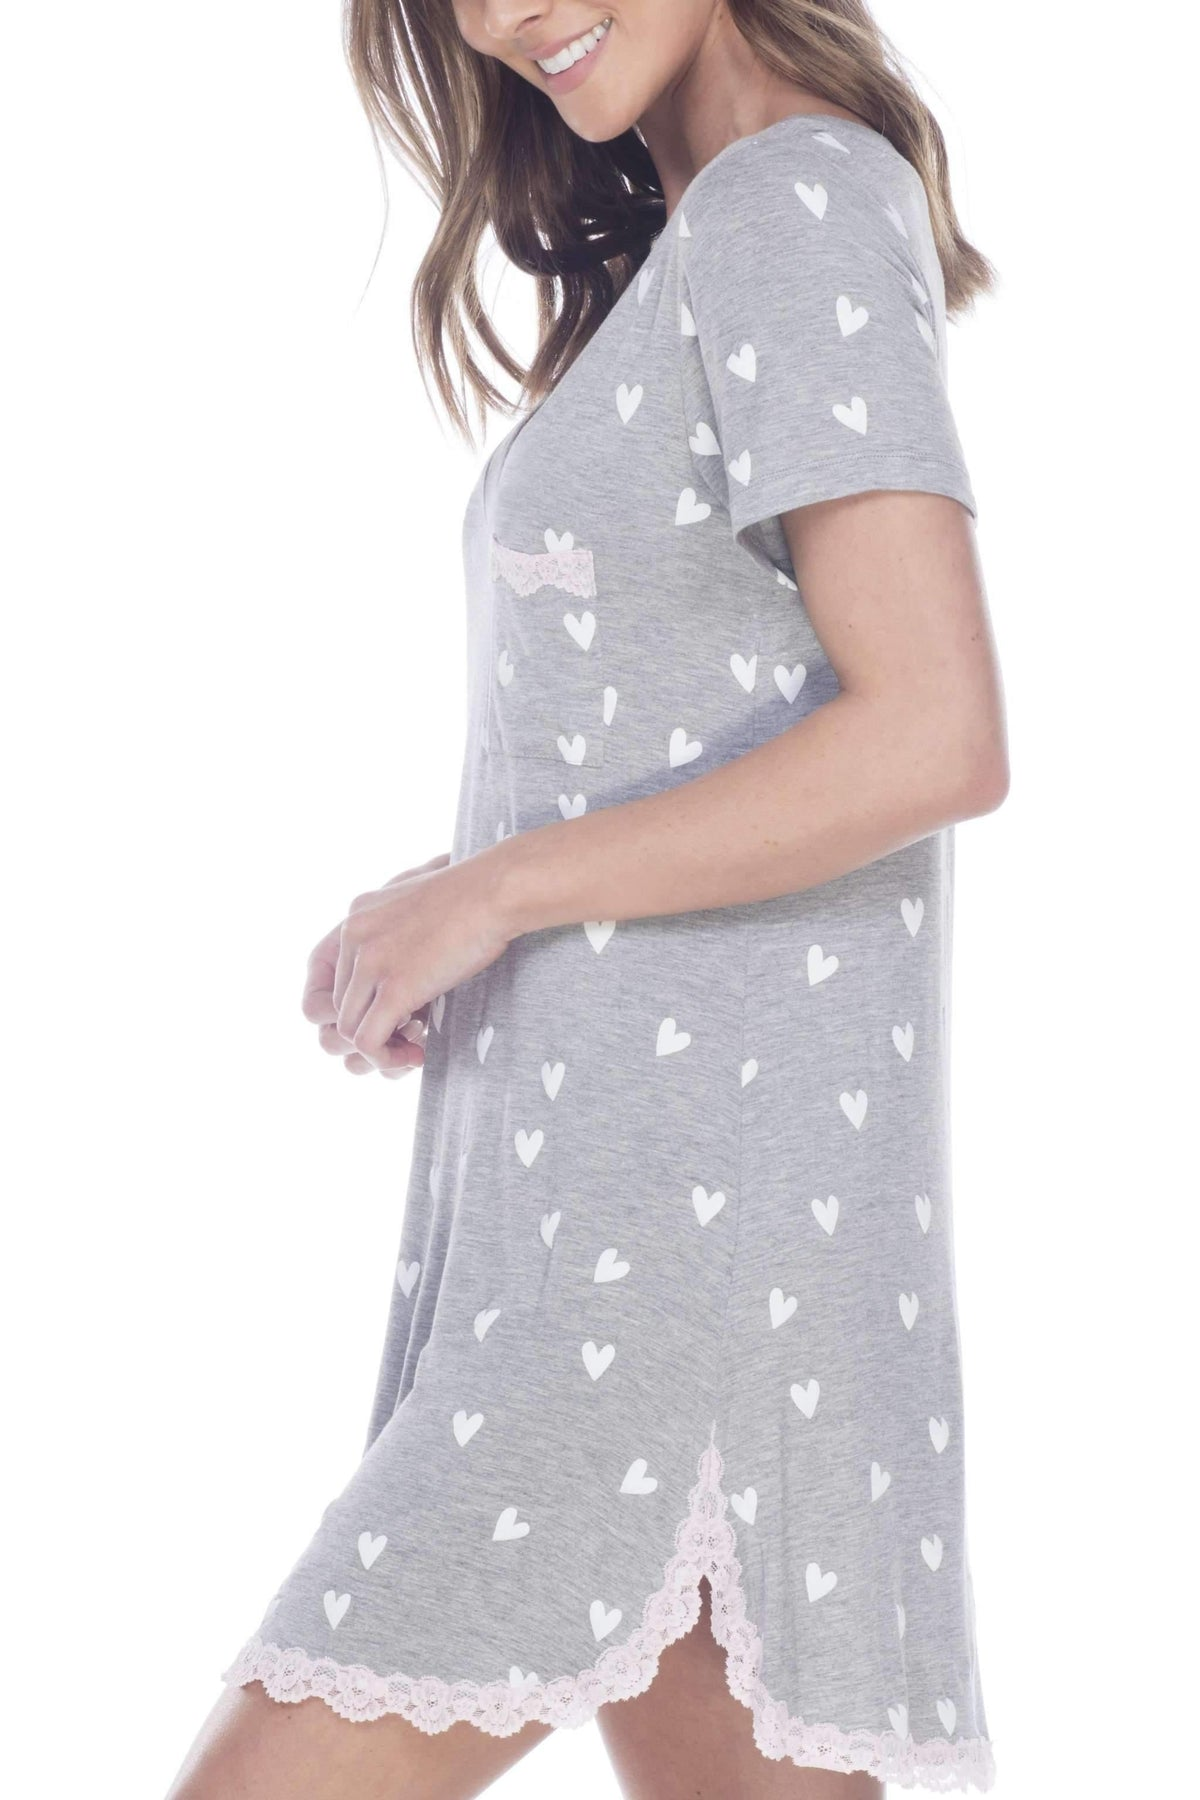 All American Sleepshirt-Sleepshirt-Honeydew Intimates-Heather Grey Hearts-Small-Honeydew Intimates